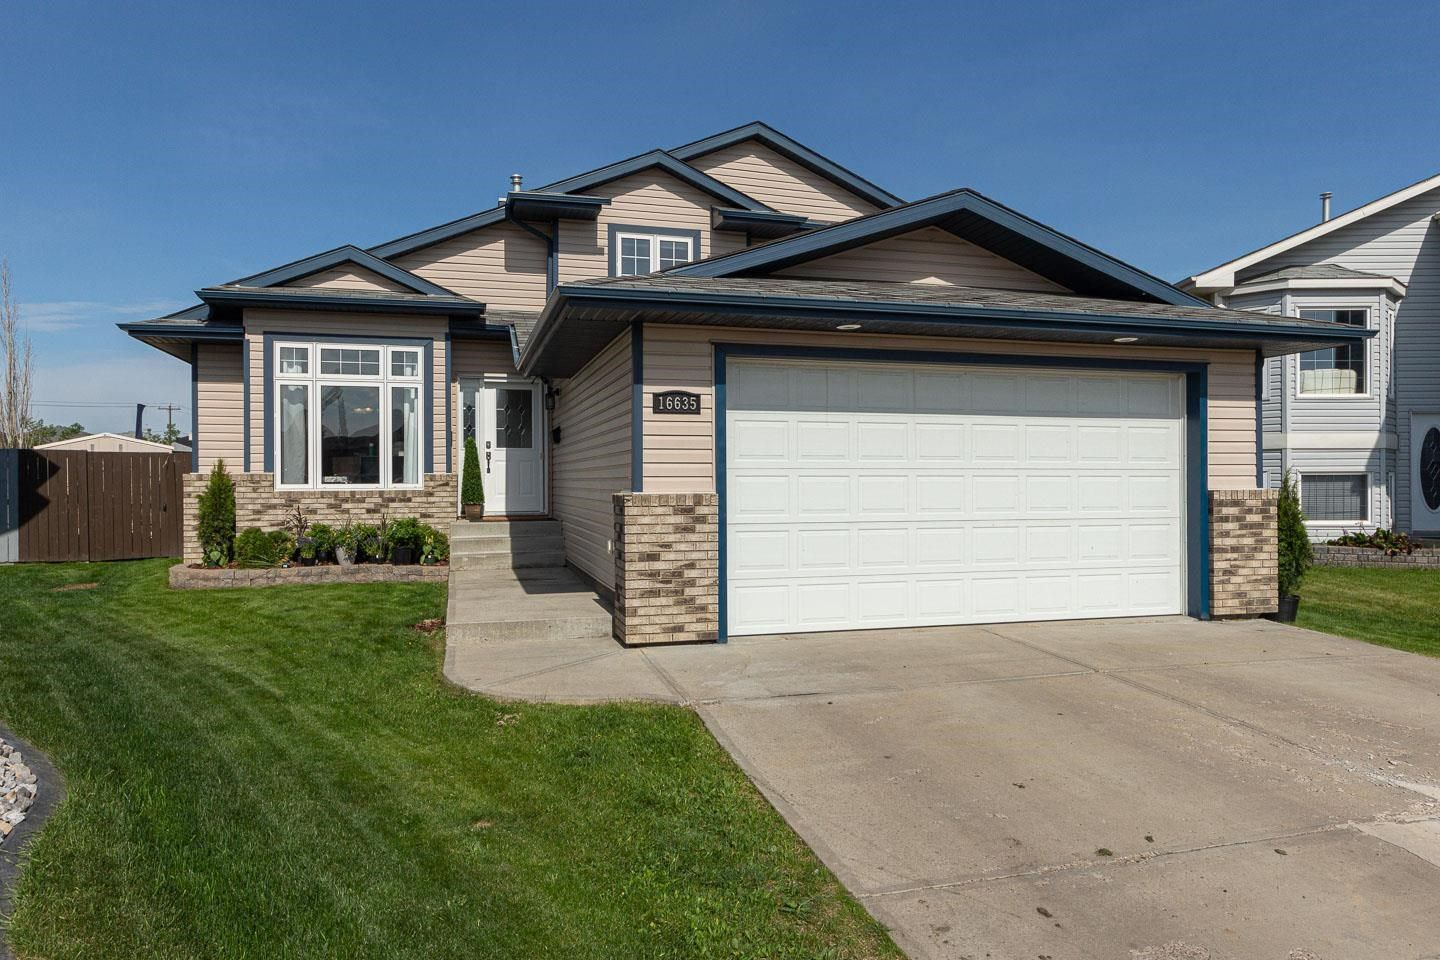 Main Photo: 16635 75 Street NW in Edmonton: Zone 28 House for sale : MLS®# E4247982